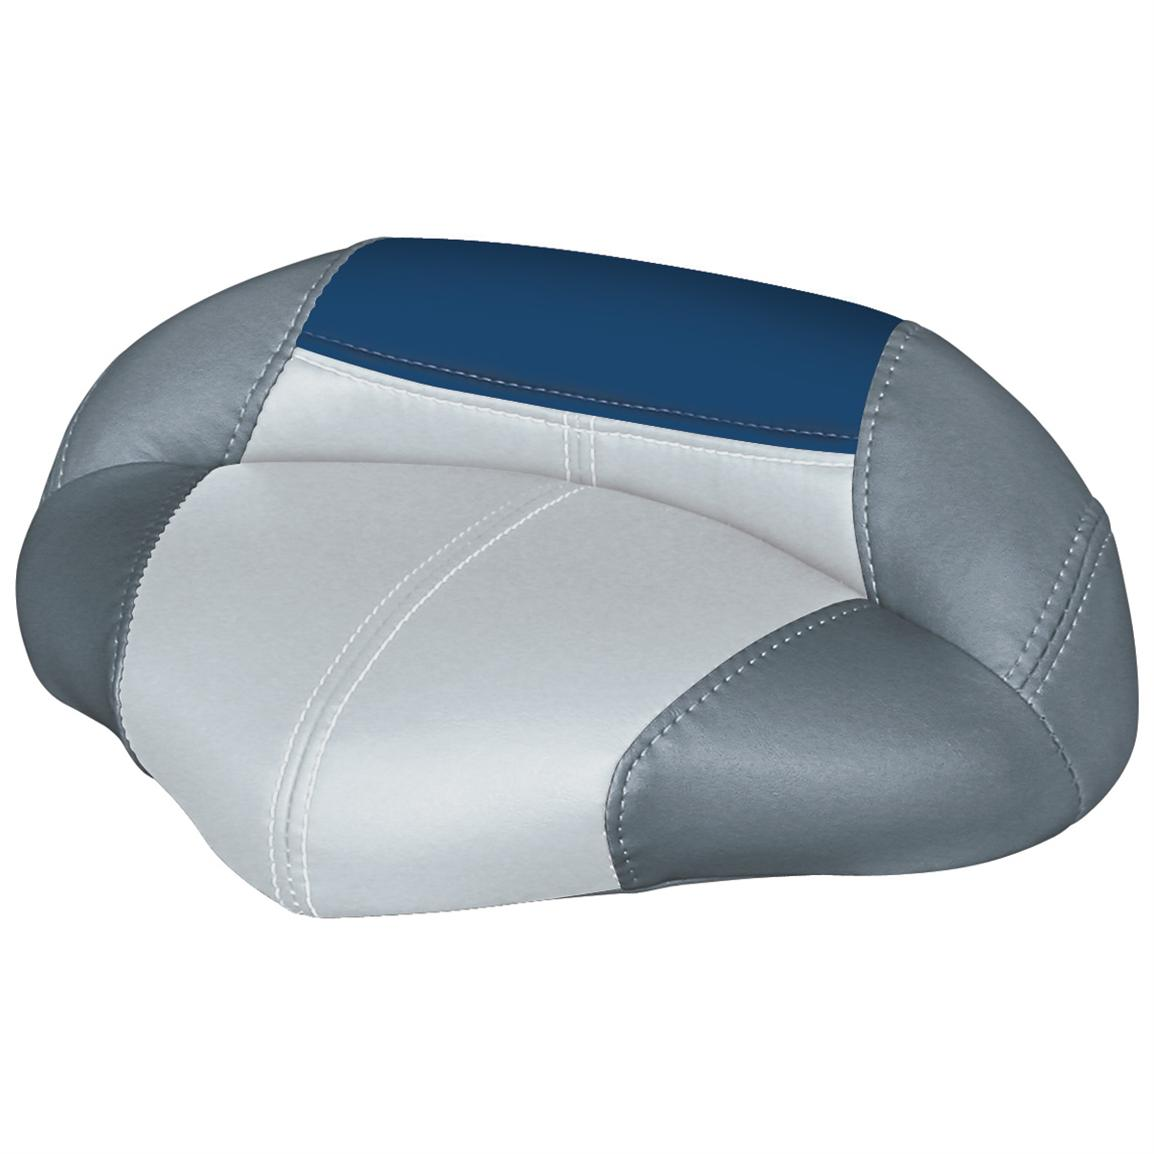 Wise® Blast-Off™ Series Pro Seat, Charcoal / Grey / Blue